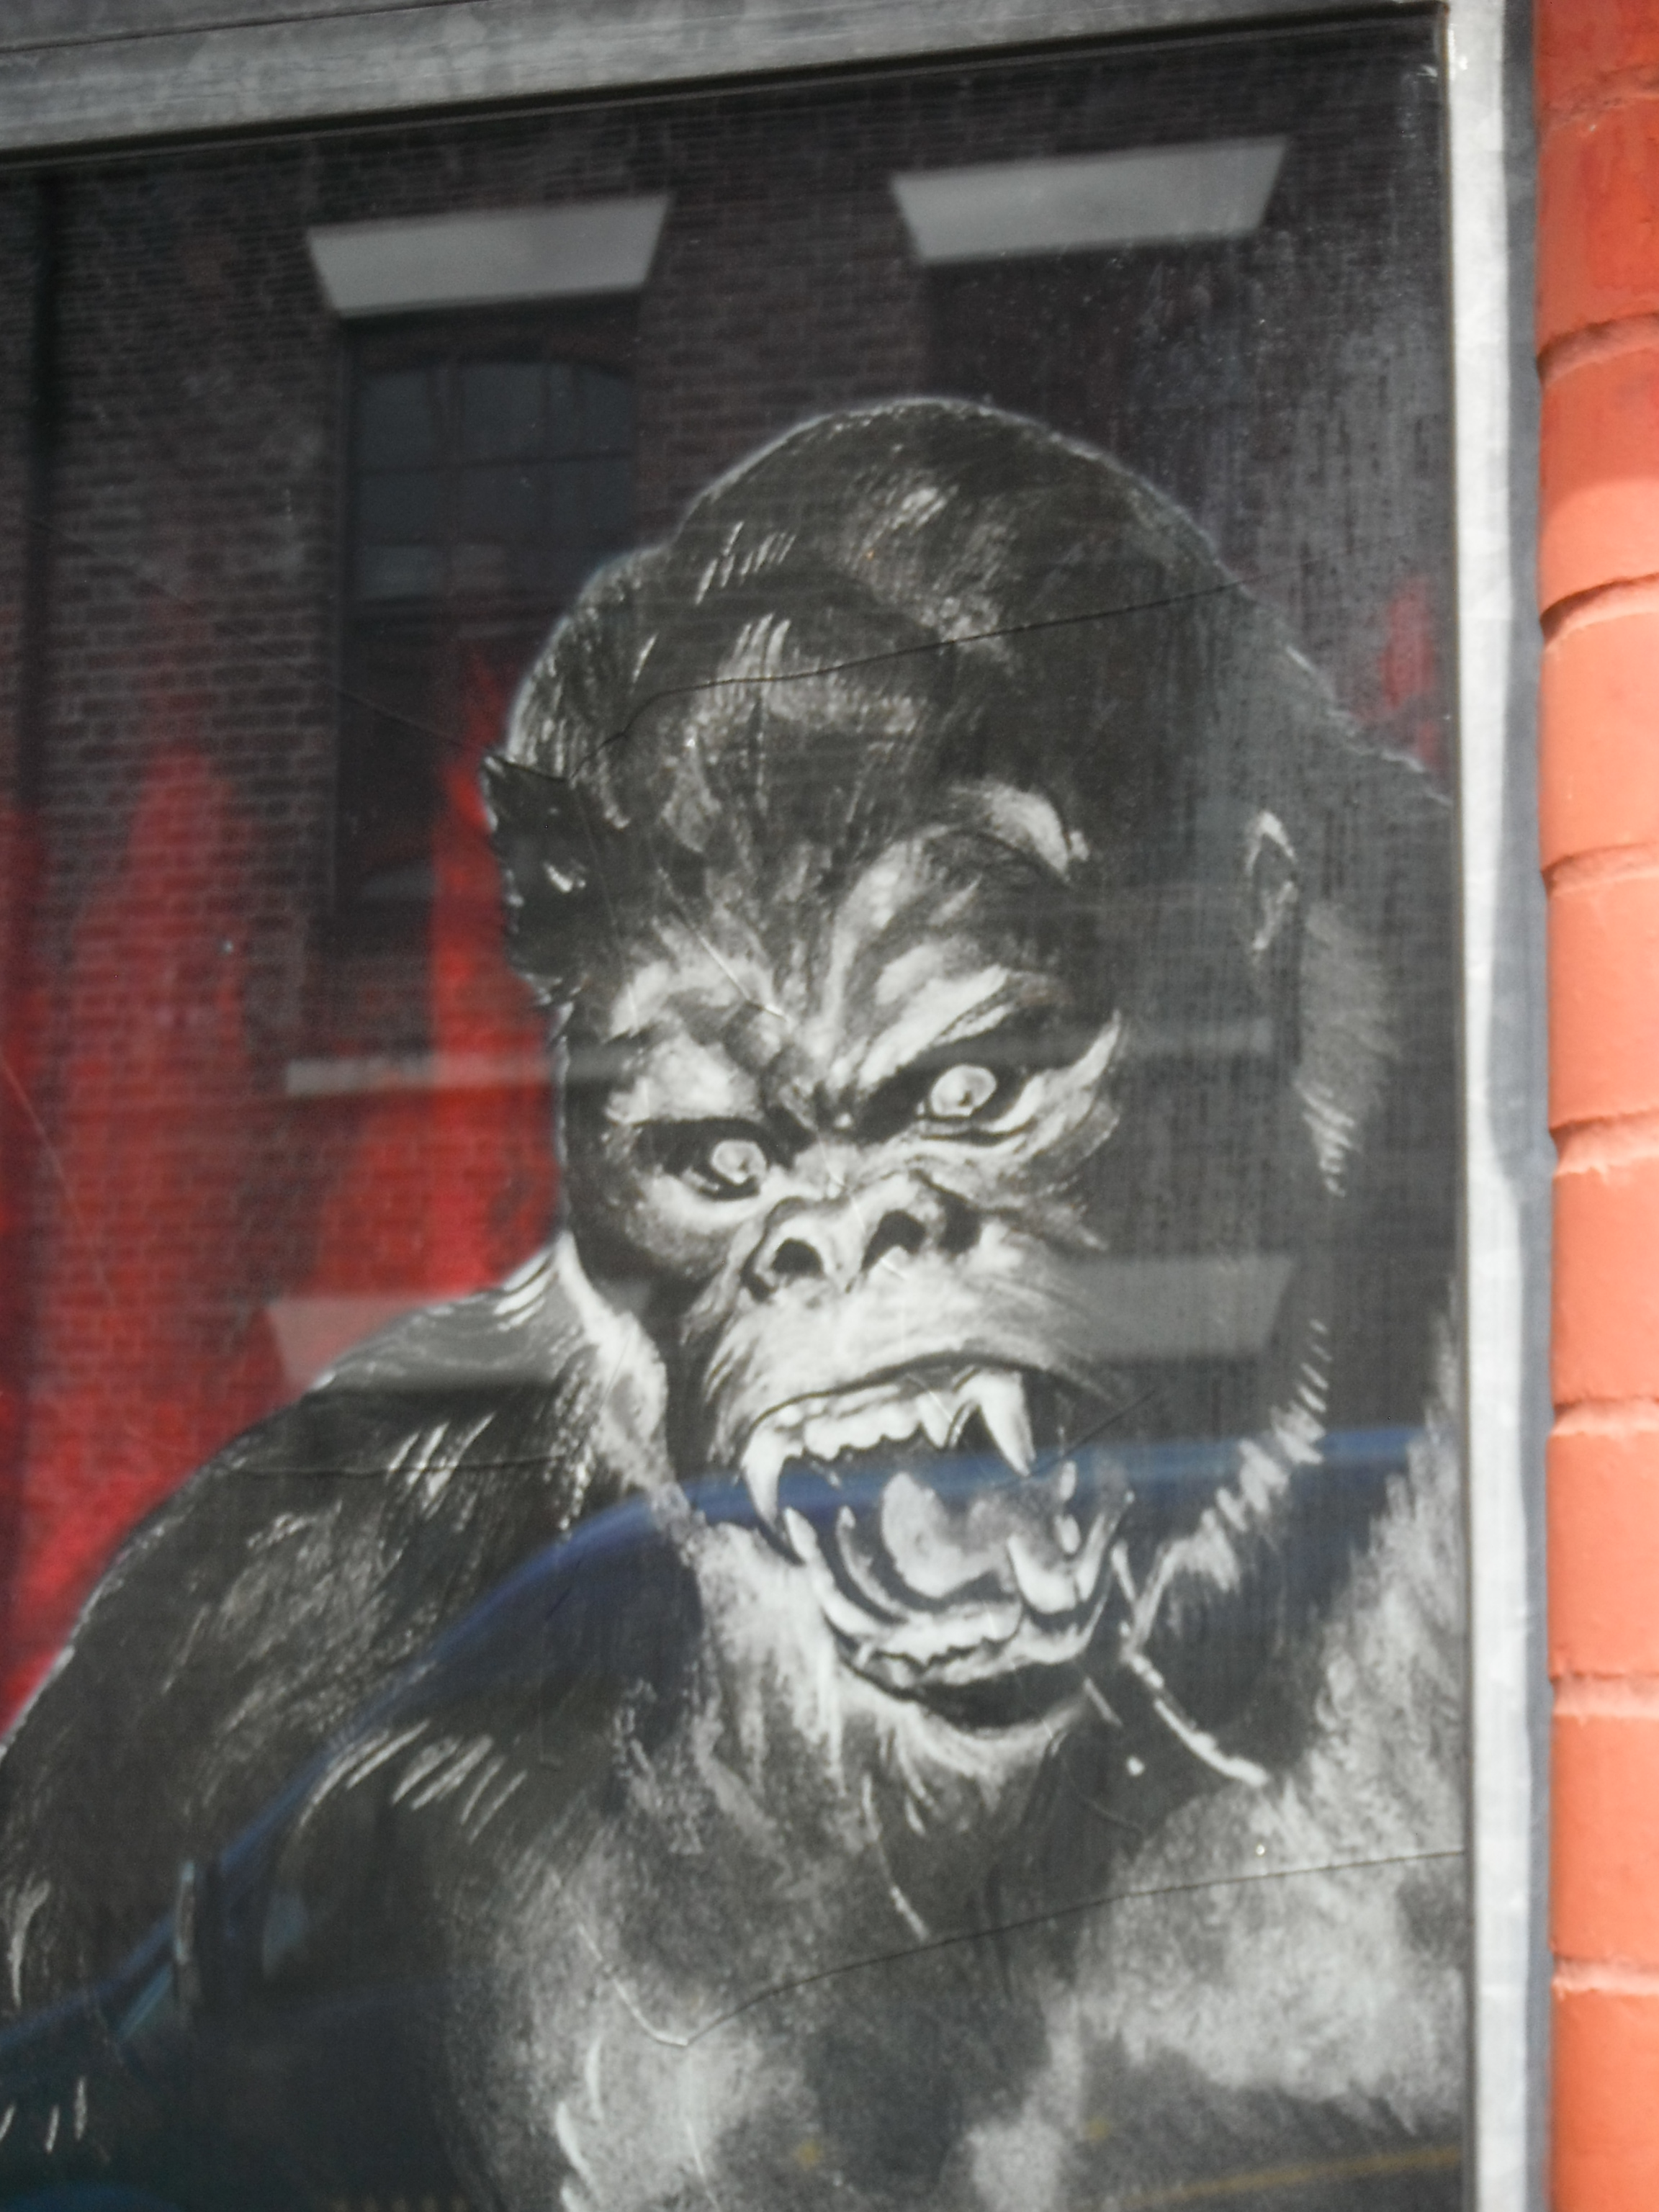 Photo taken by me - King Kong in Liverpool